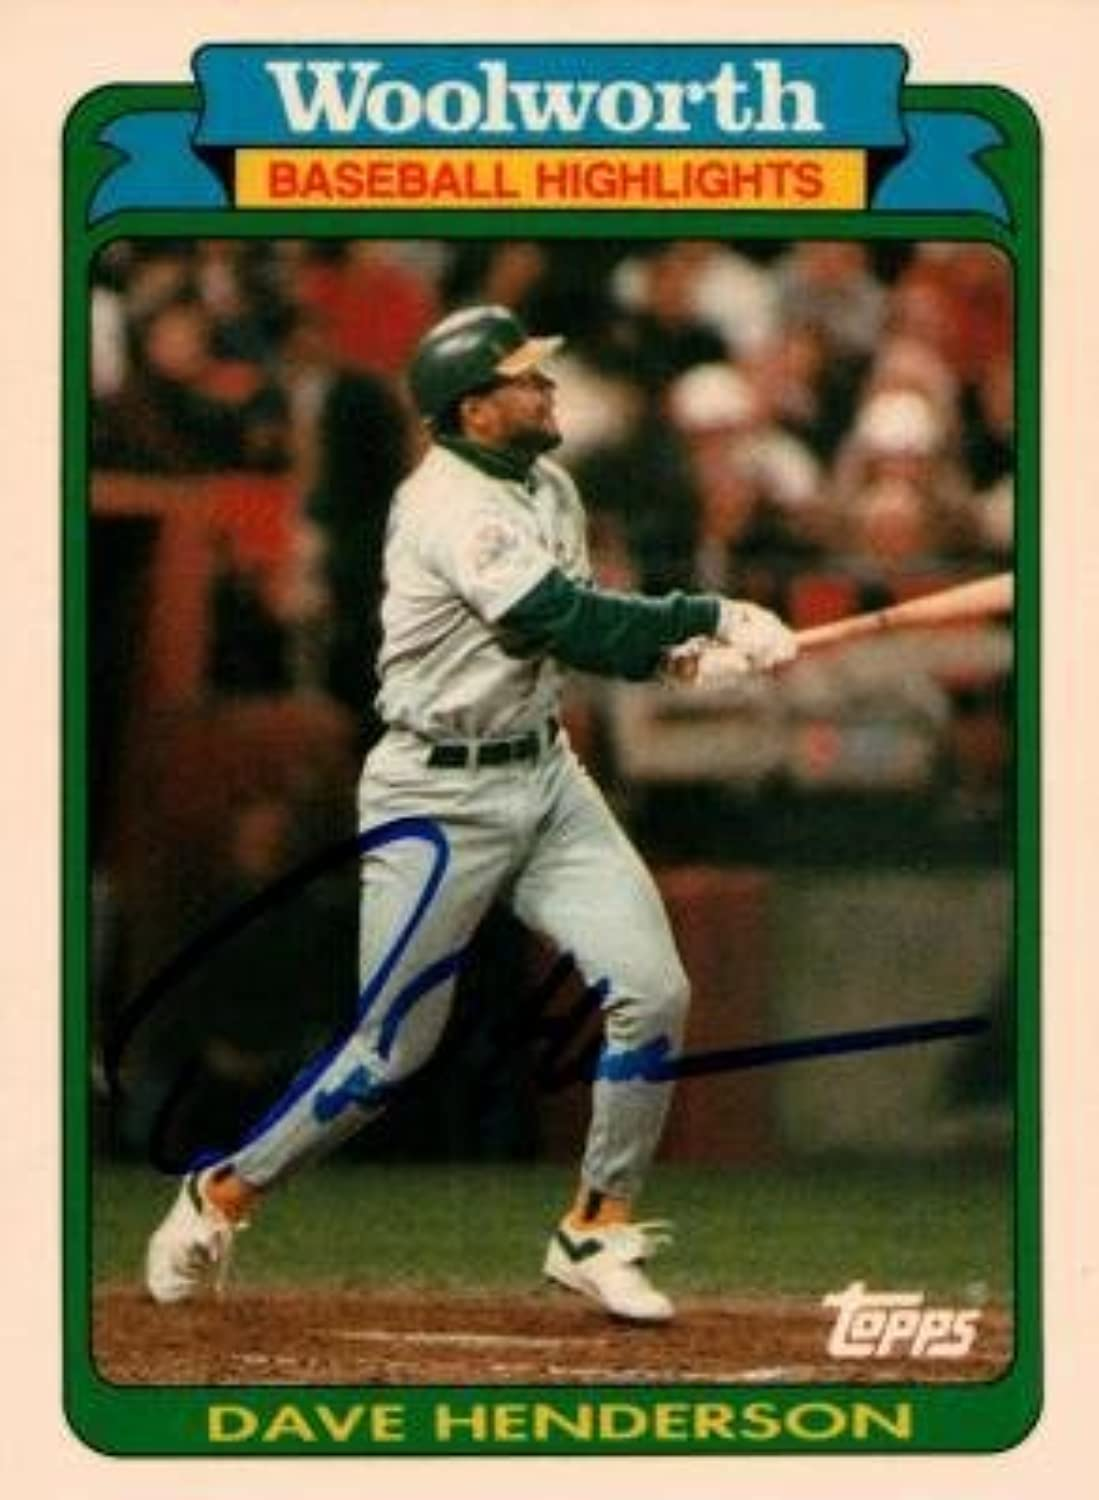 Dave Henderson Autographed Baseball Card Oakland 1990 Topps